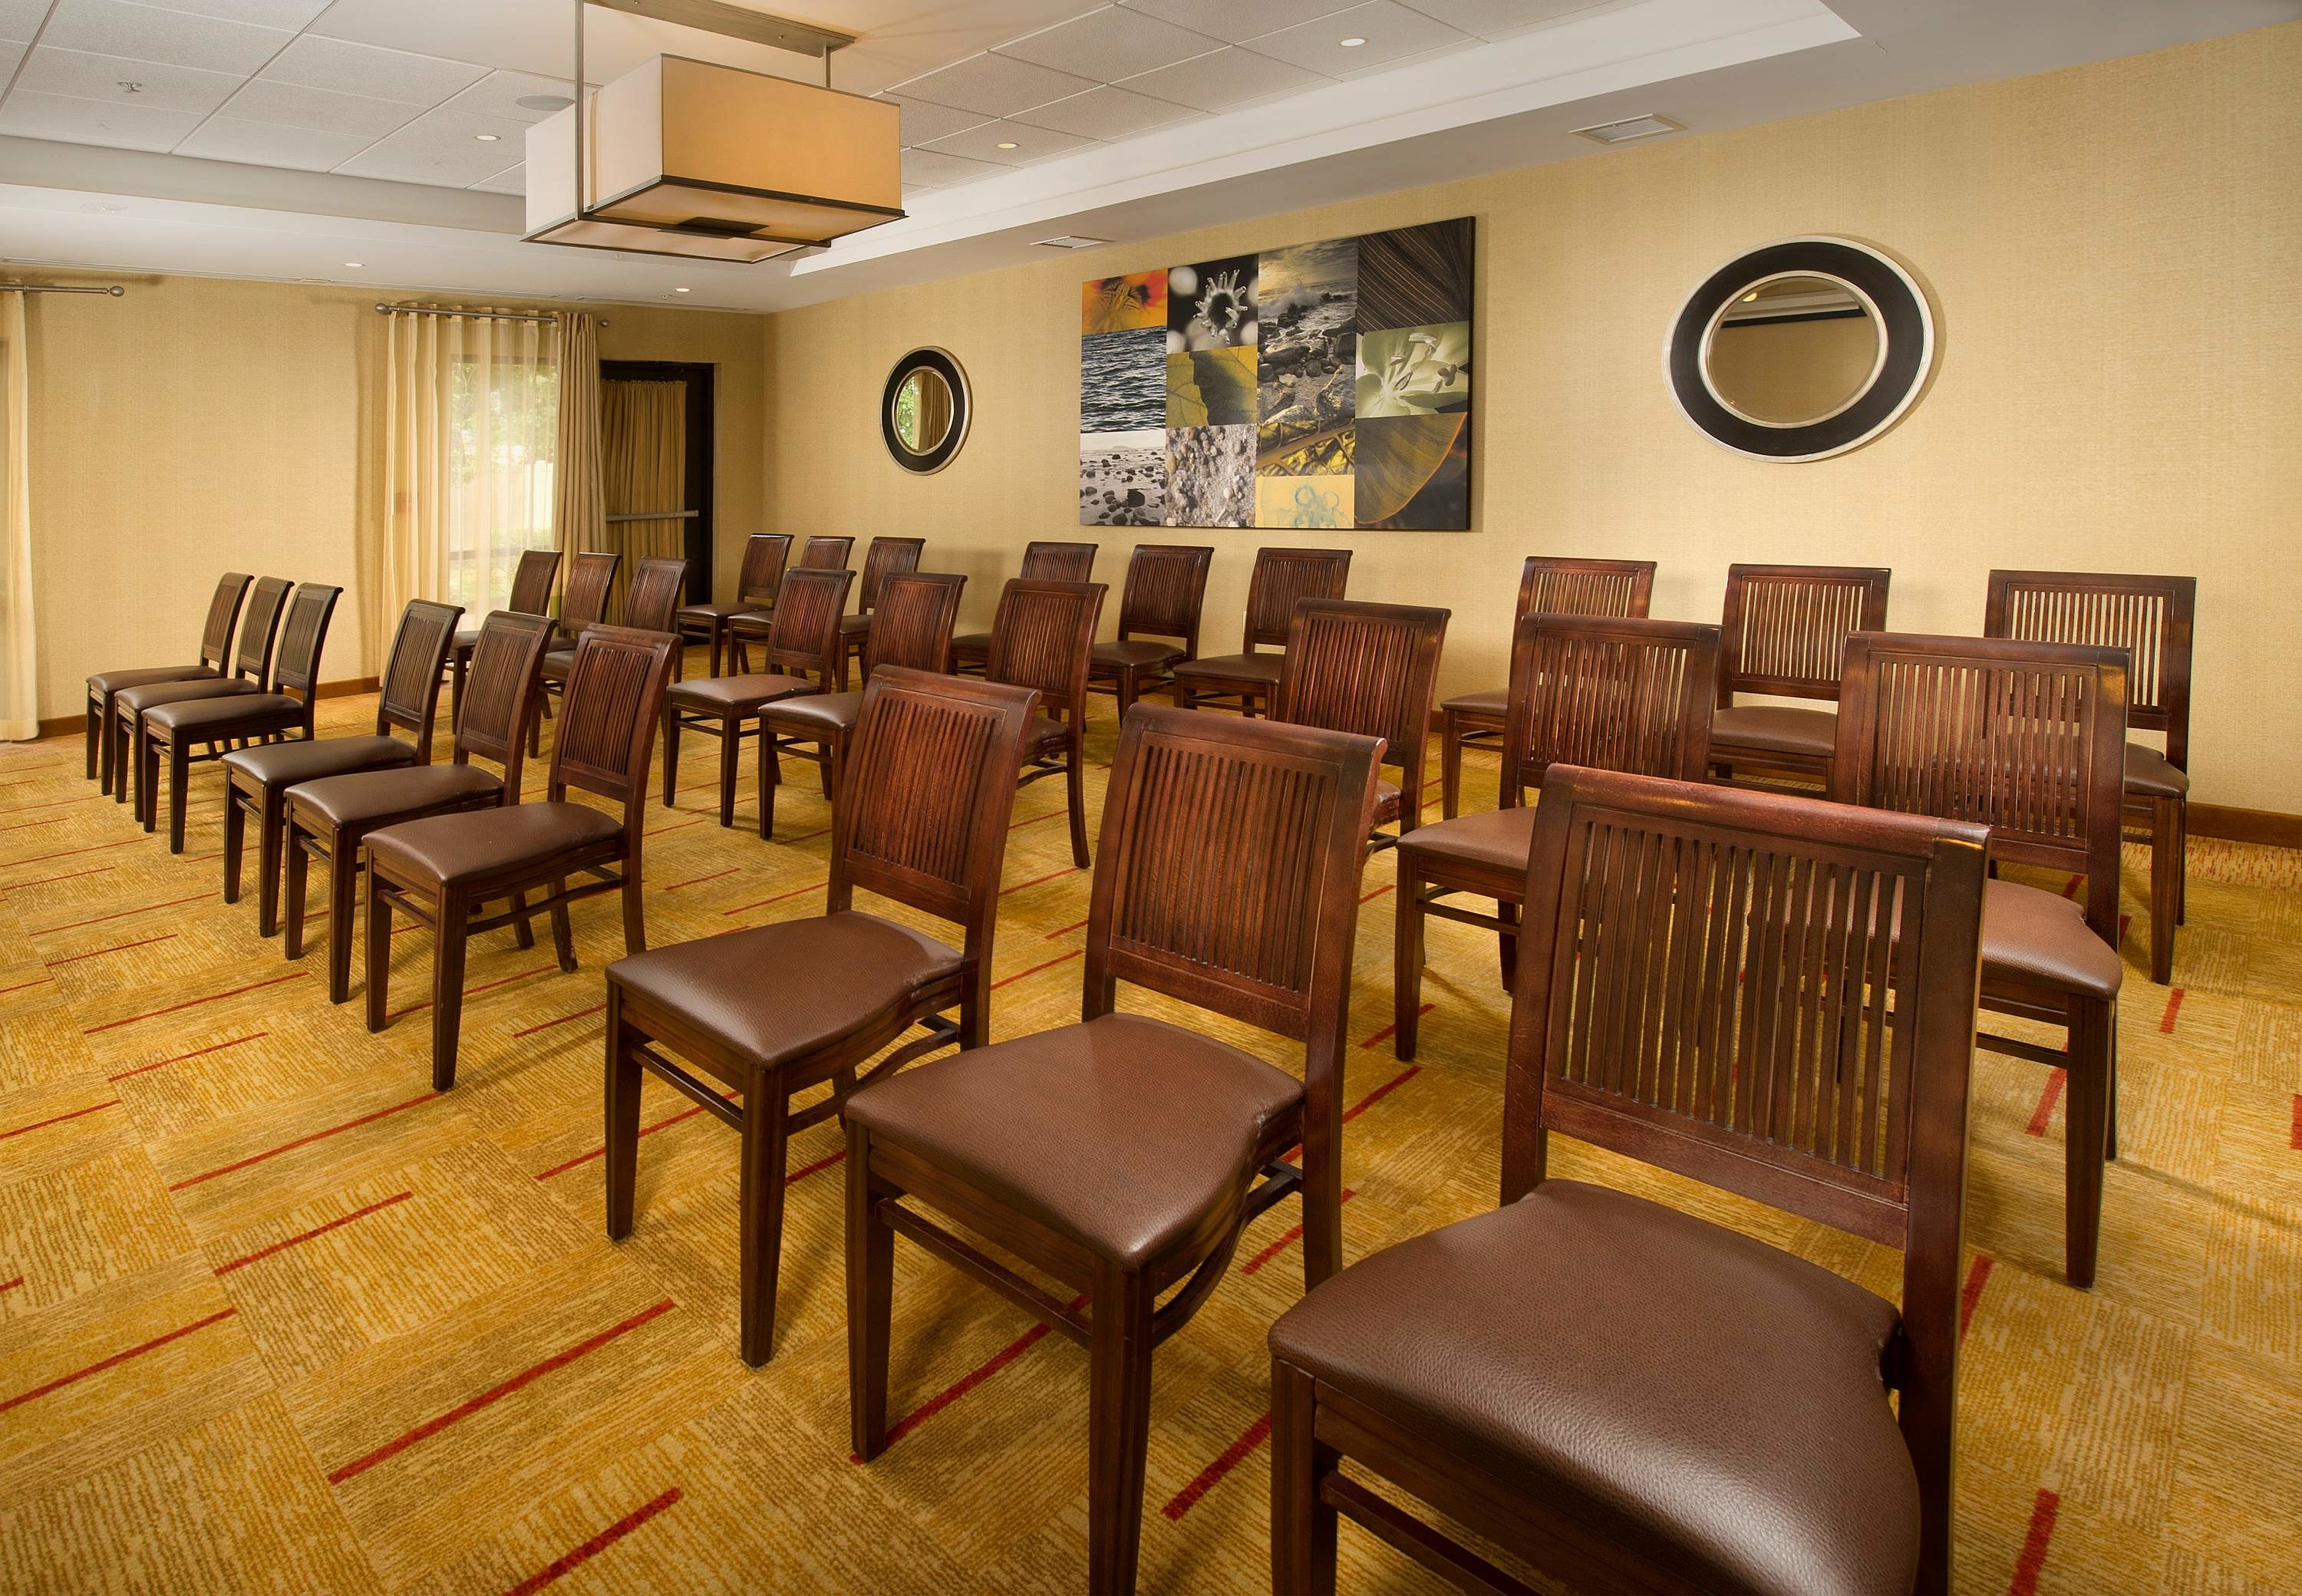 Courtyard By Marriott Waldorf At 3145 Crain Highway Waldorf Md On Fave